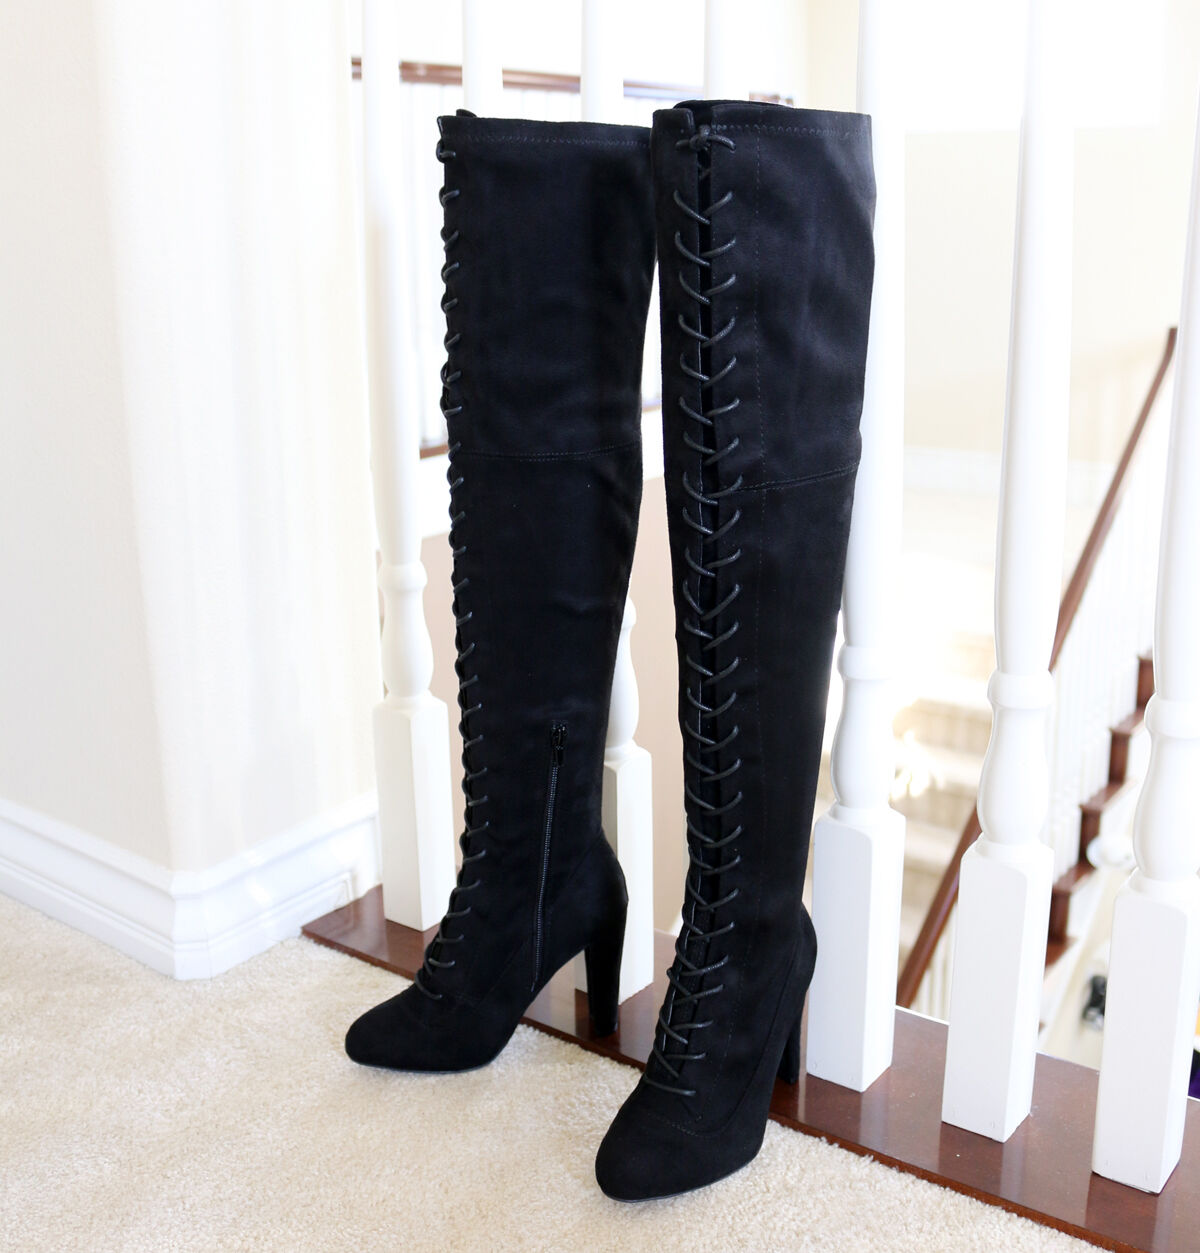 Lace Up Stretch Suede  3.75 in. Covered Thick Heel  Over The Knee High Boots BLK